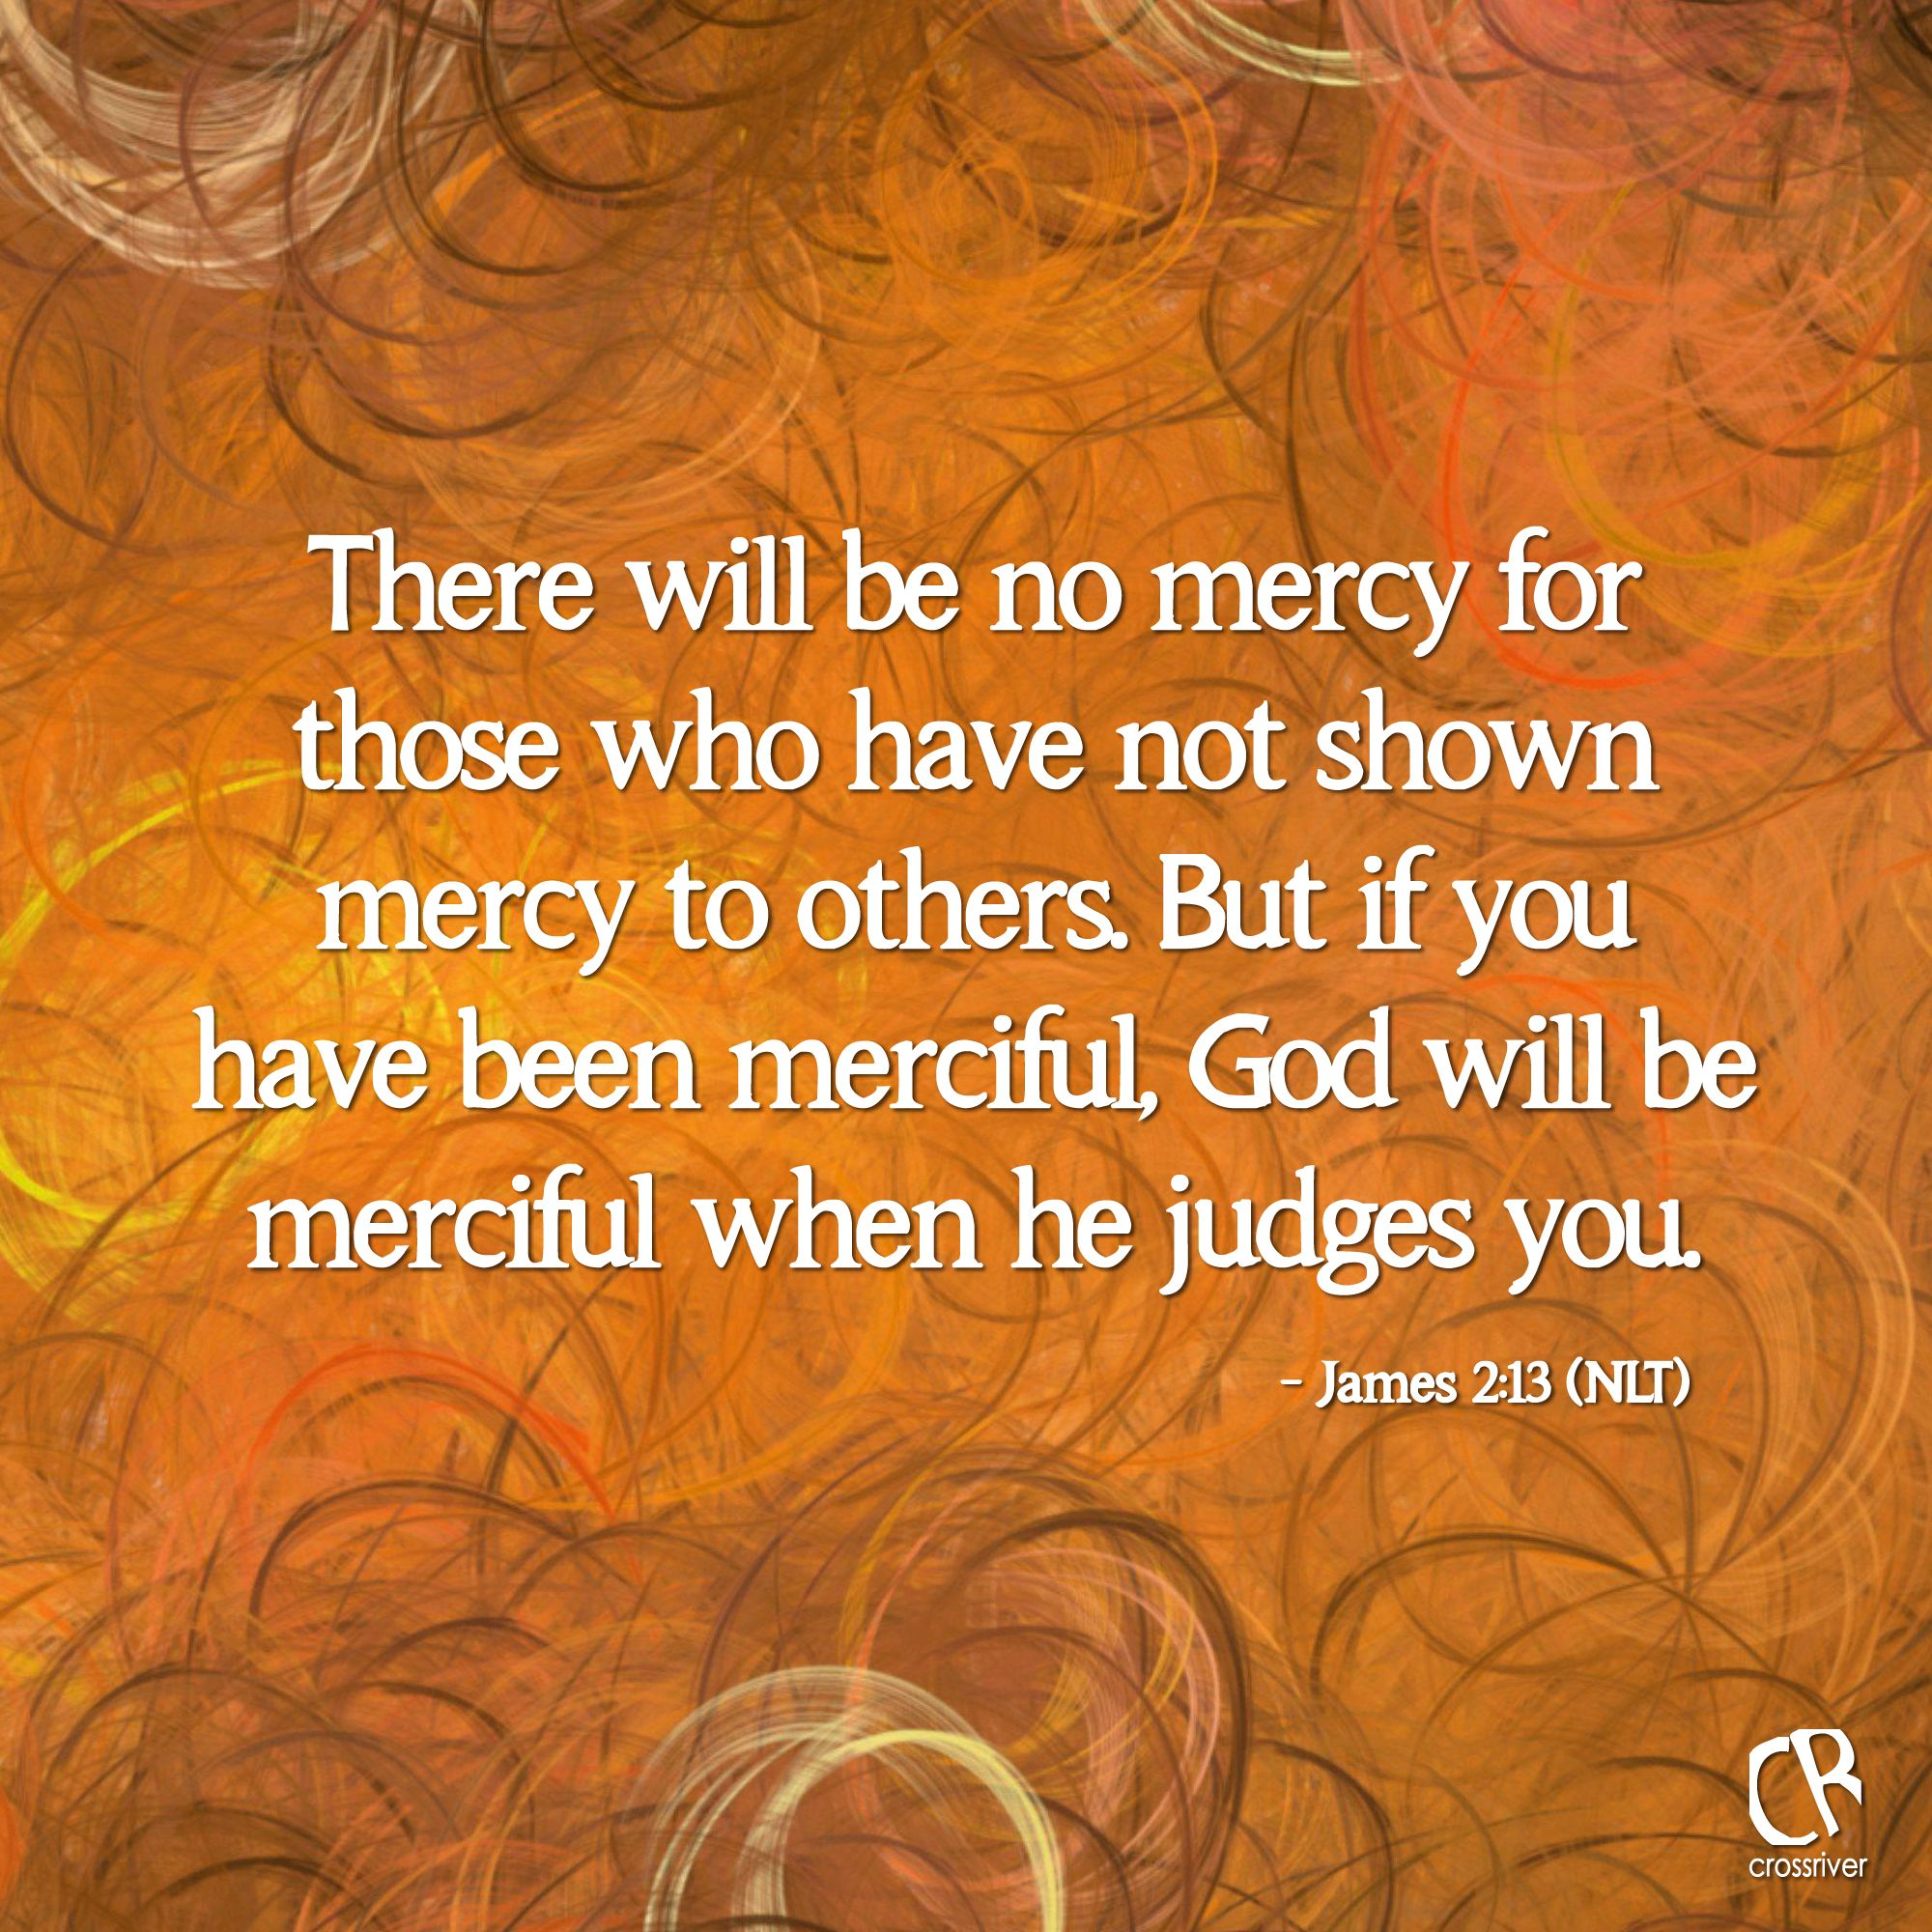 mercy defined - compassion or forgiveness shown toward someone whom